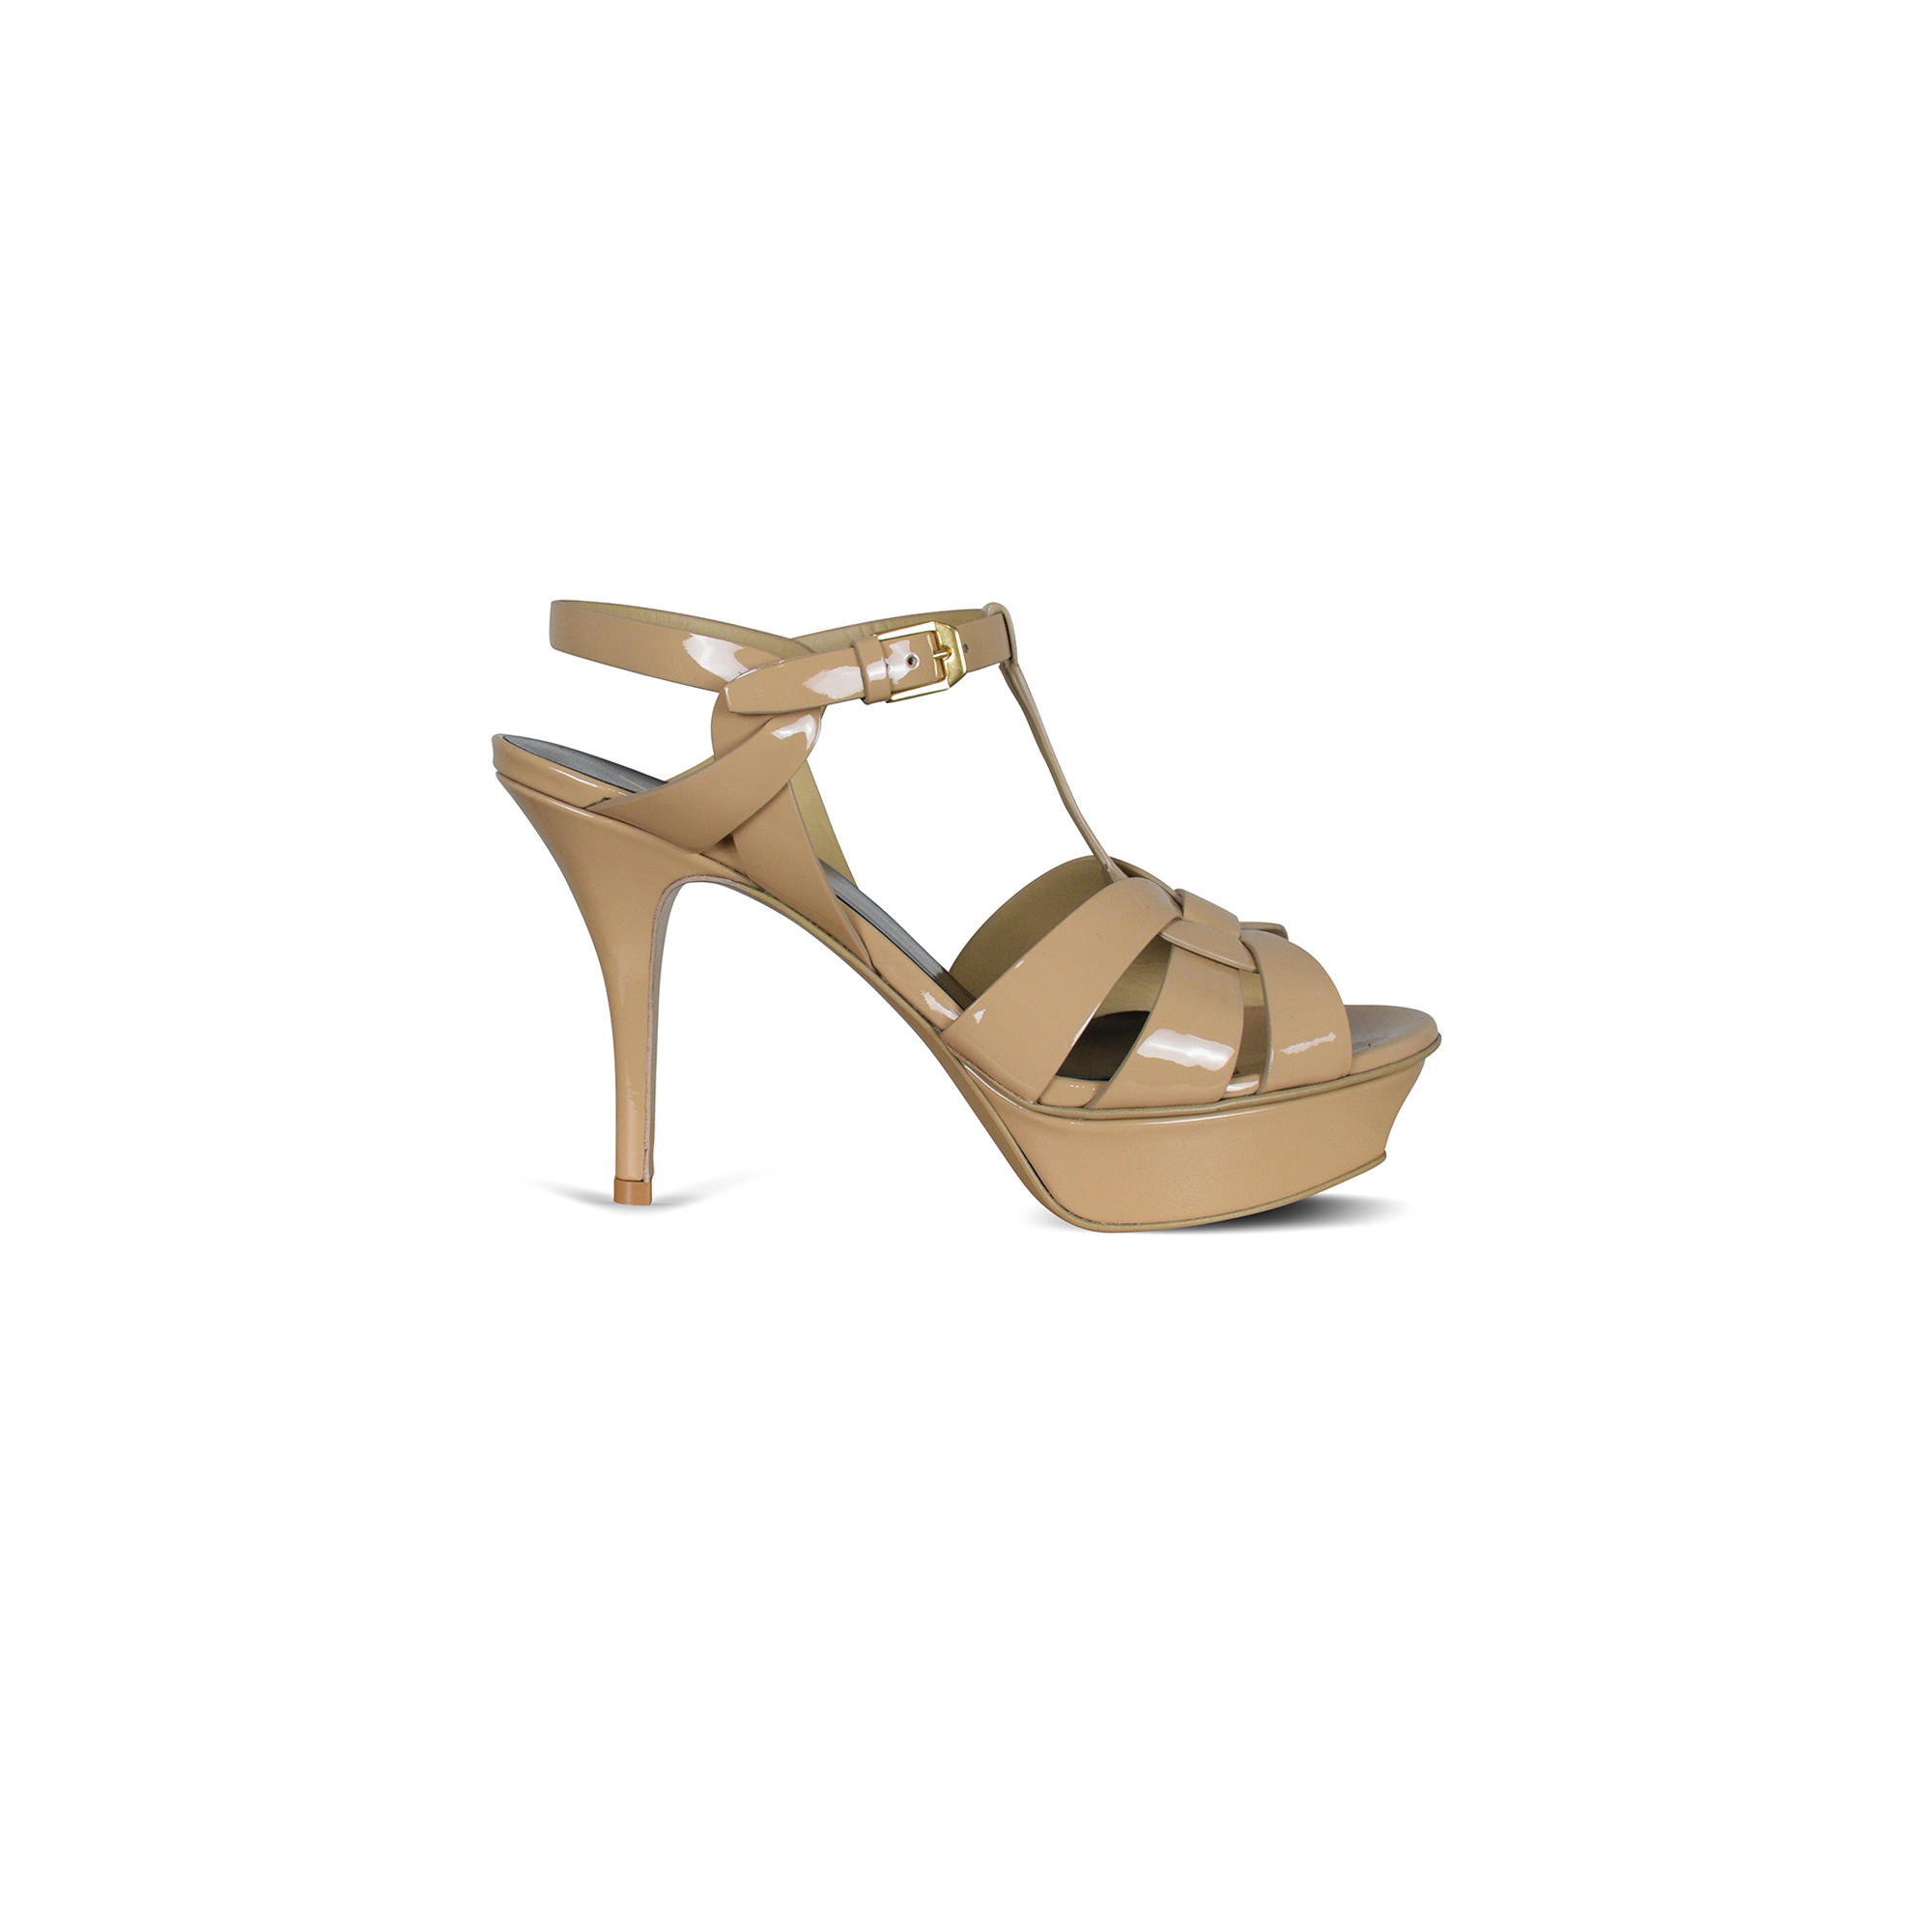 Tribute Saint Laurent sandals in nude patent leather.